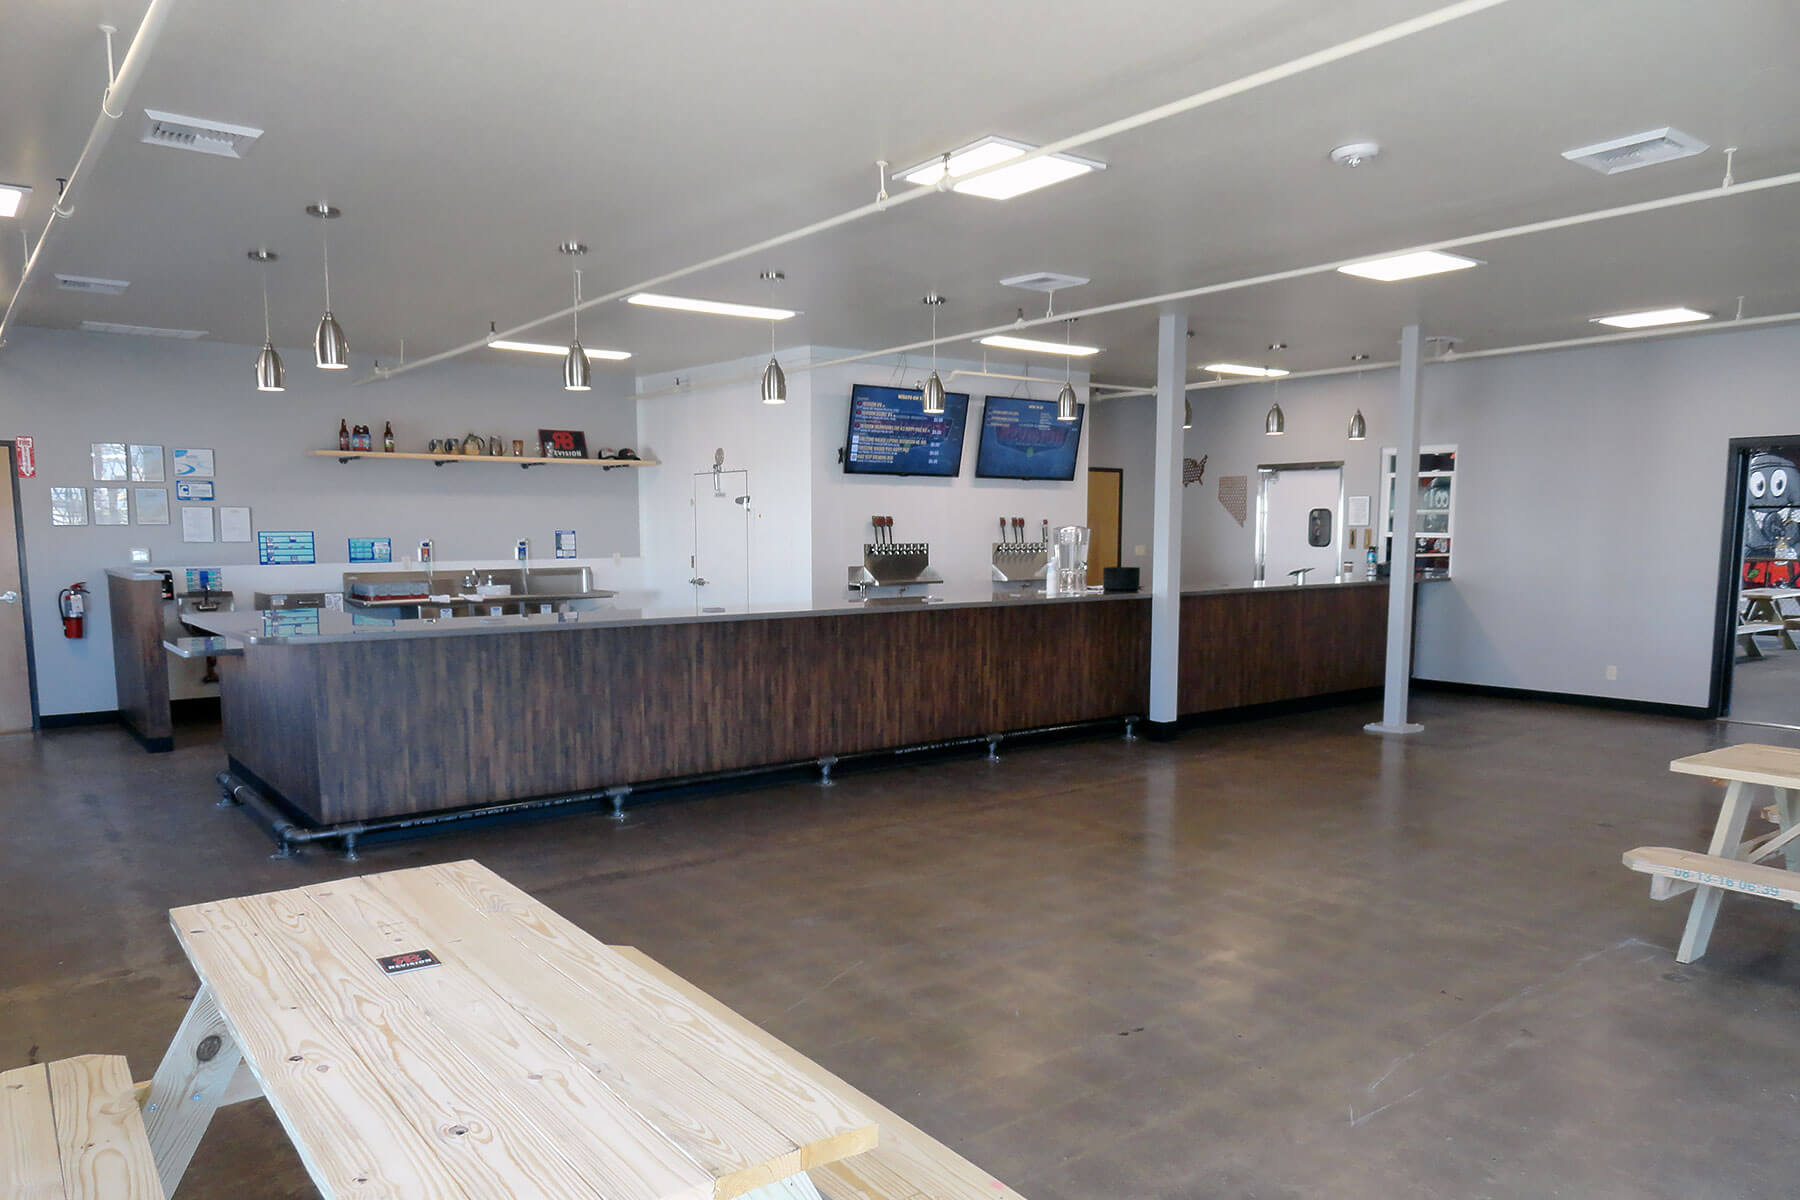 Inside the taproom at Revision Brewing Company in Sparks, Nevada